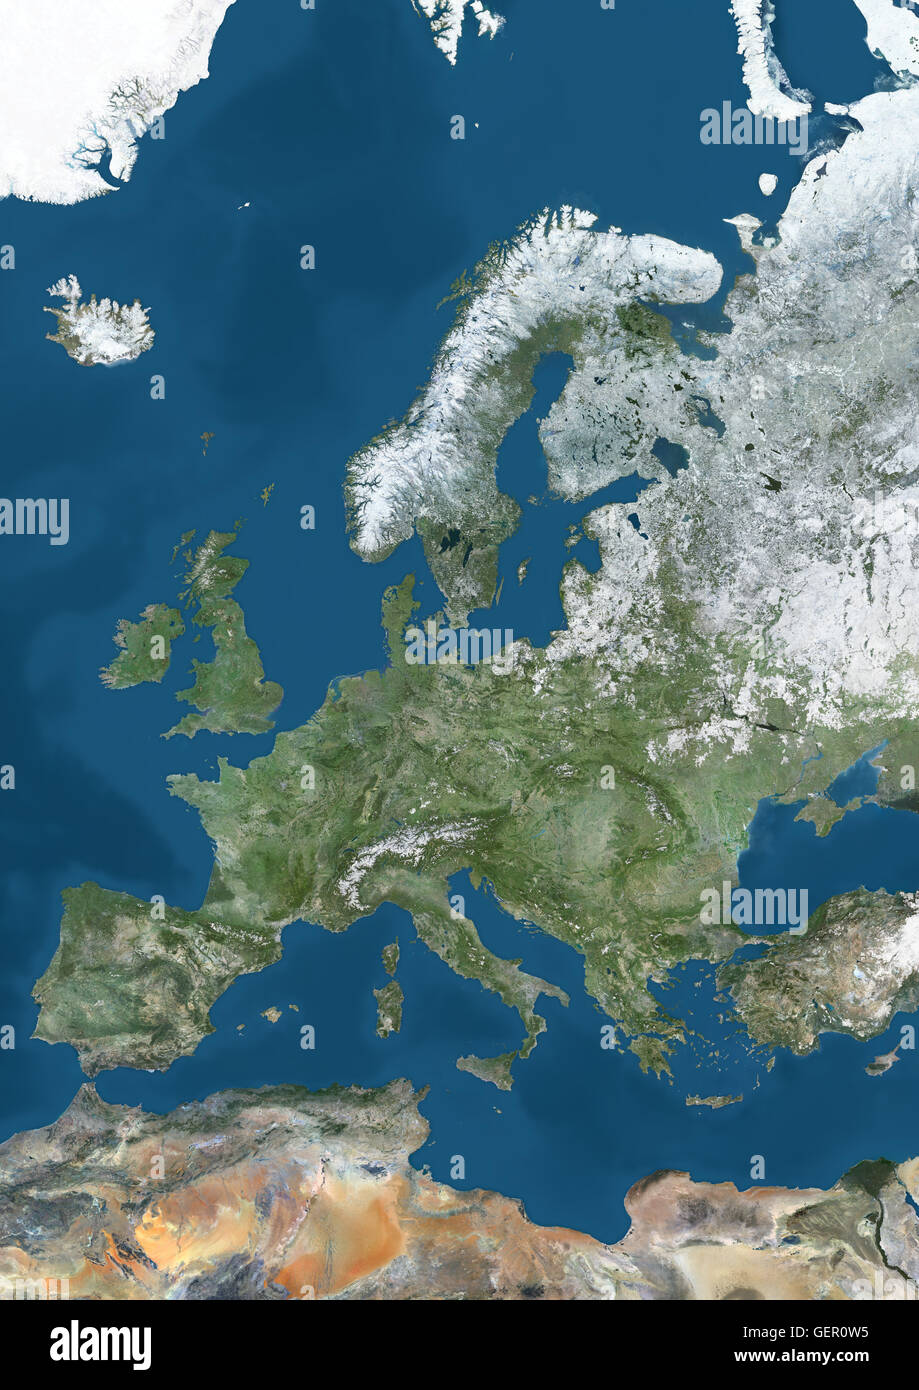 Snow Map Europe.Satellite View Of Europe In Winter With Partial Snow Cover This